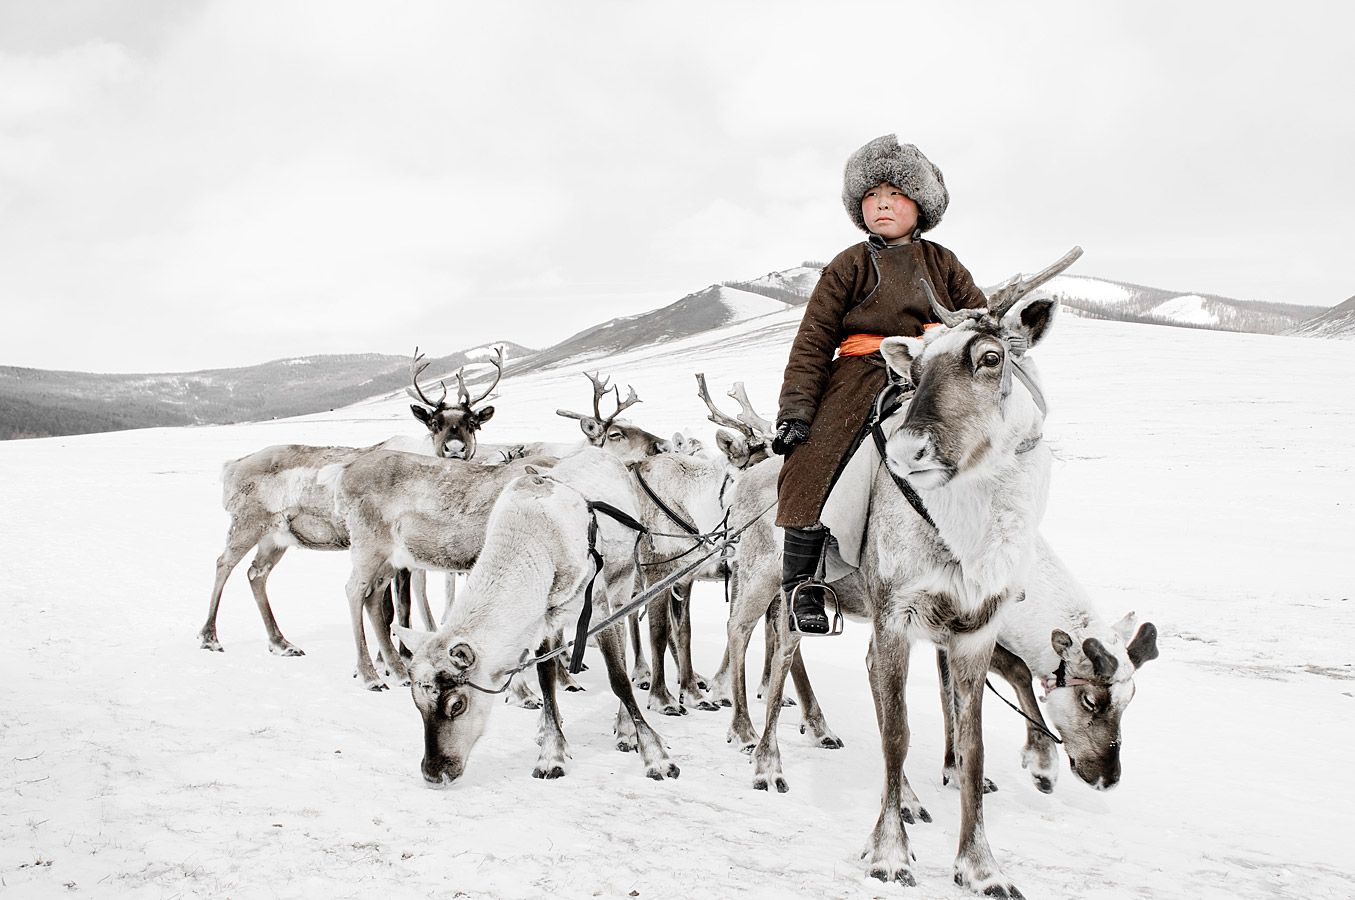 A Tsaatan child rides his reindeer in winter.